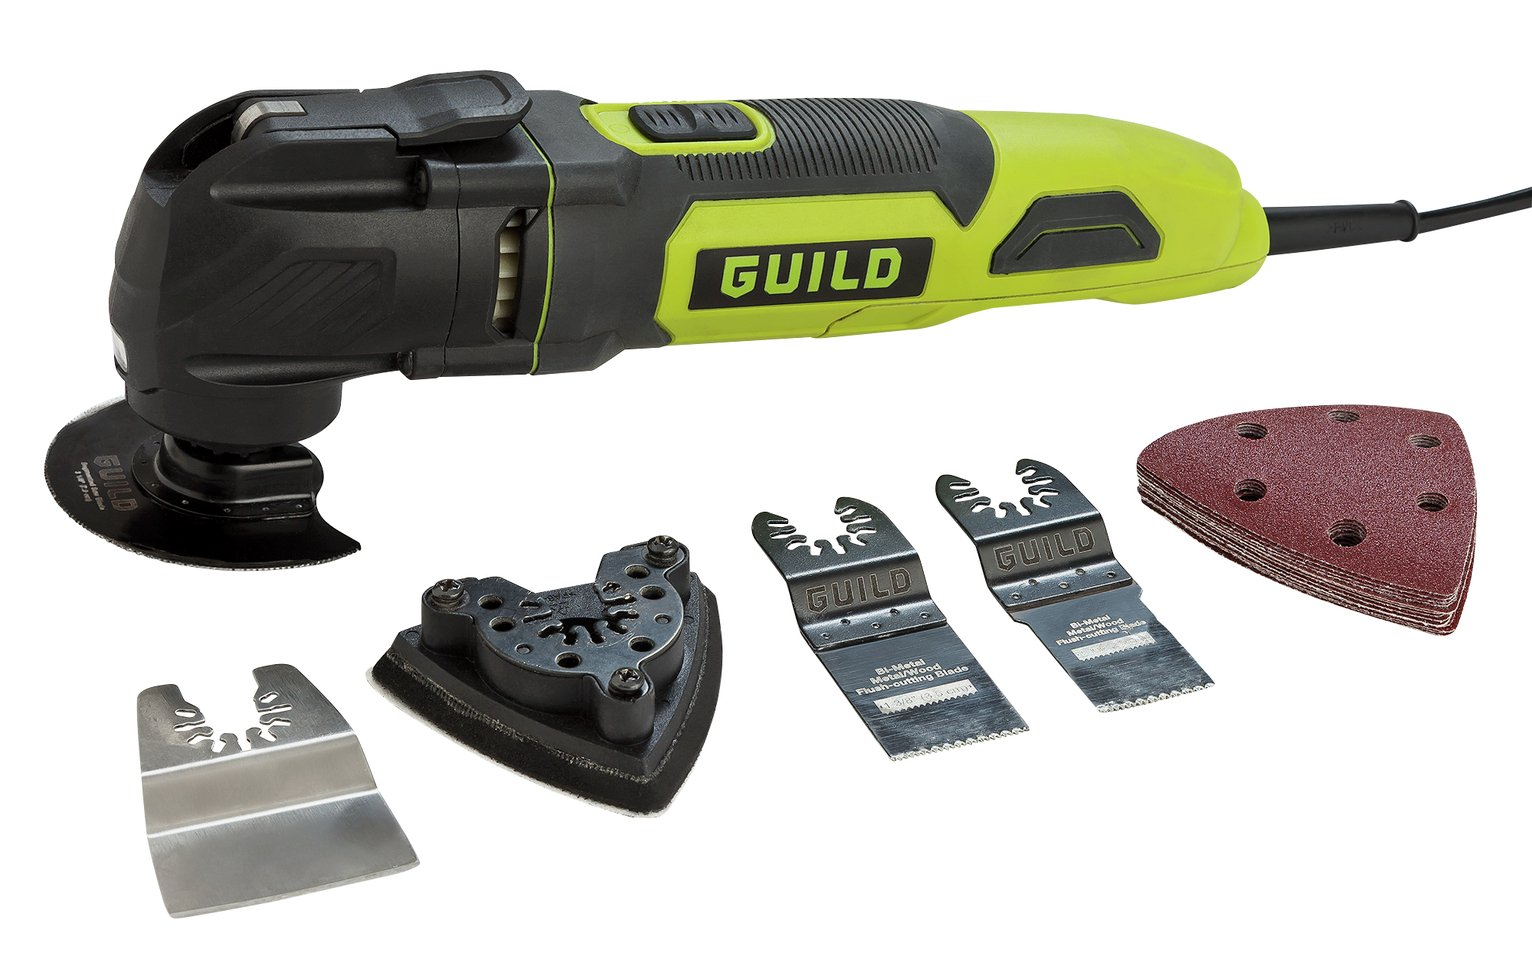 Image of Guild 3-in-1 300W Multi Tool